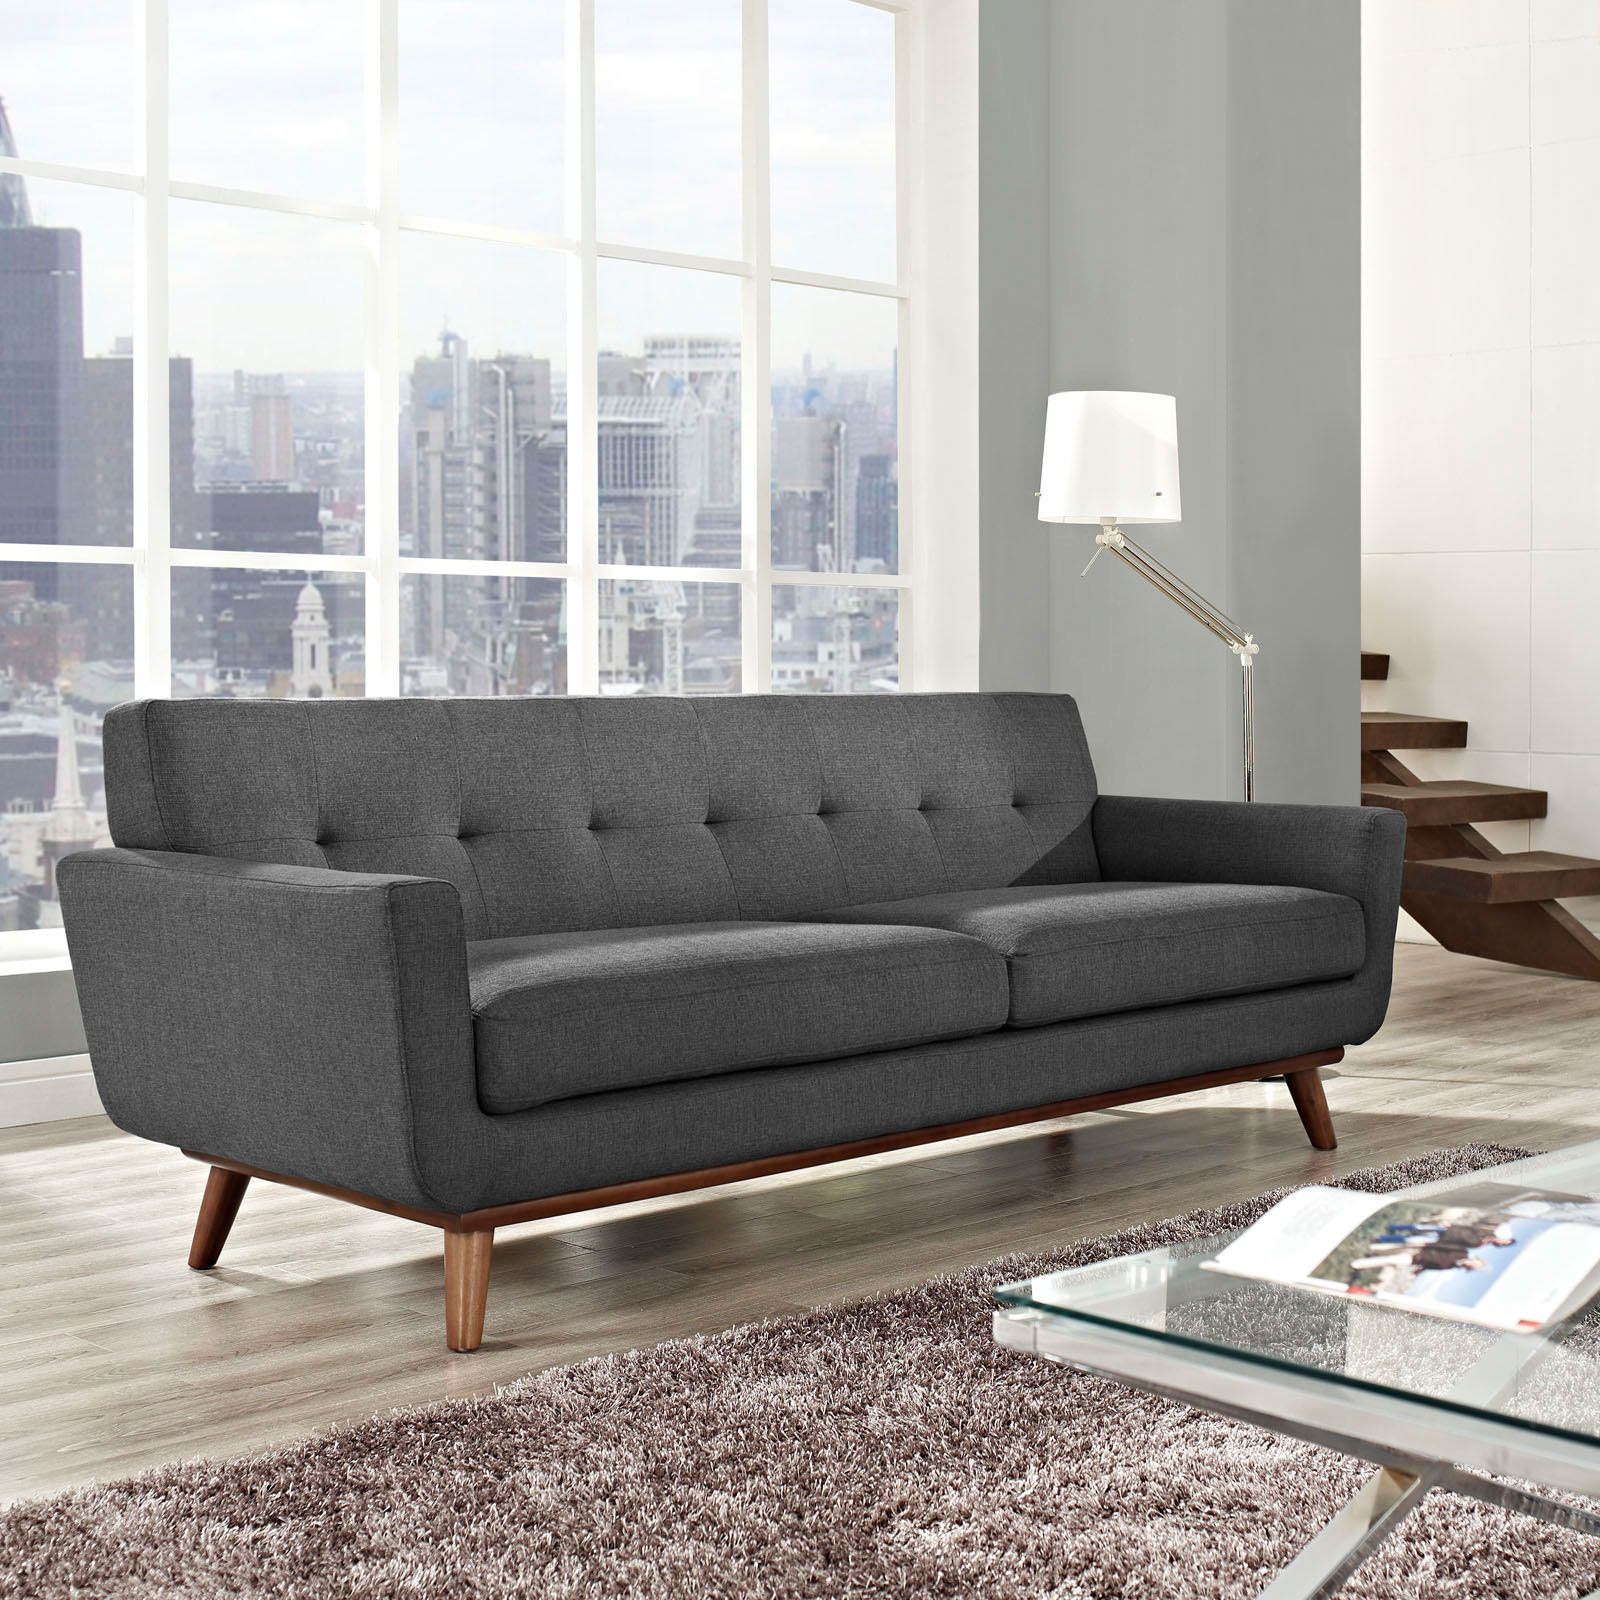 Sofas Under 400 With Images Mid Century Sofa Furniture Modern Furniture Living Room